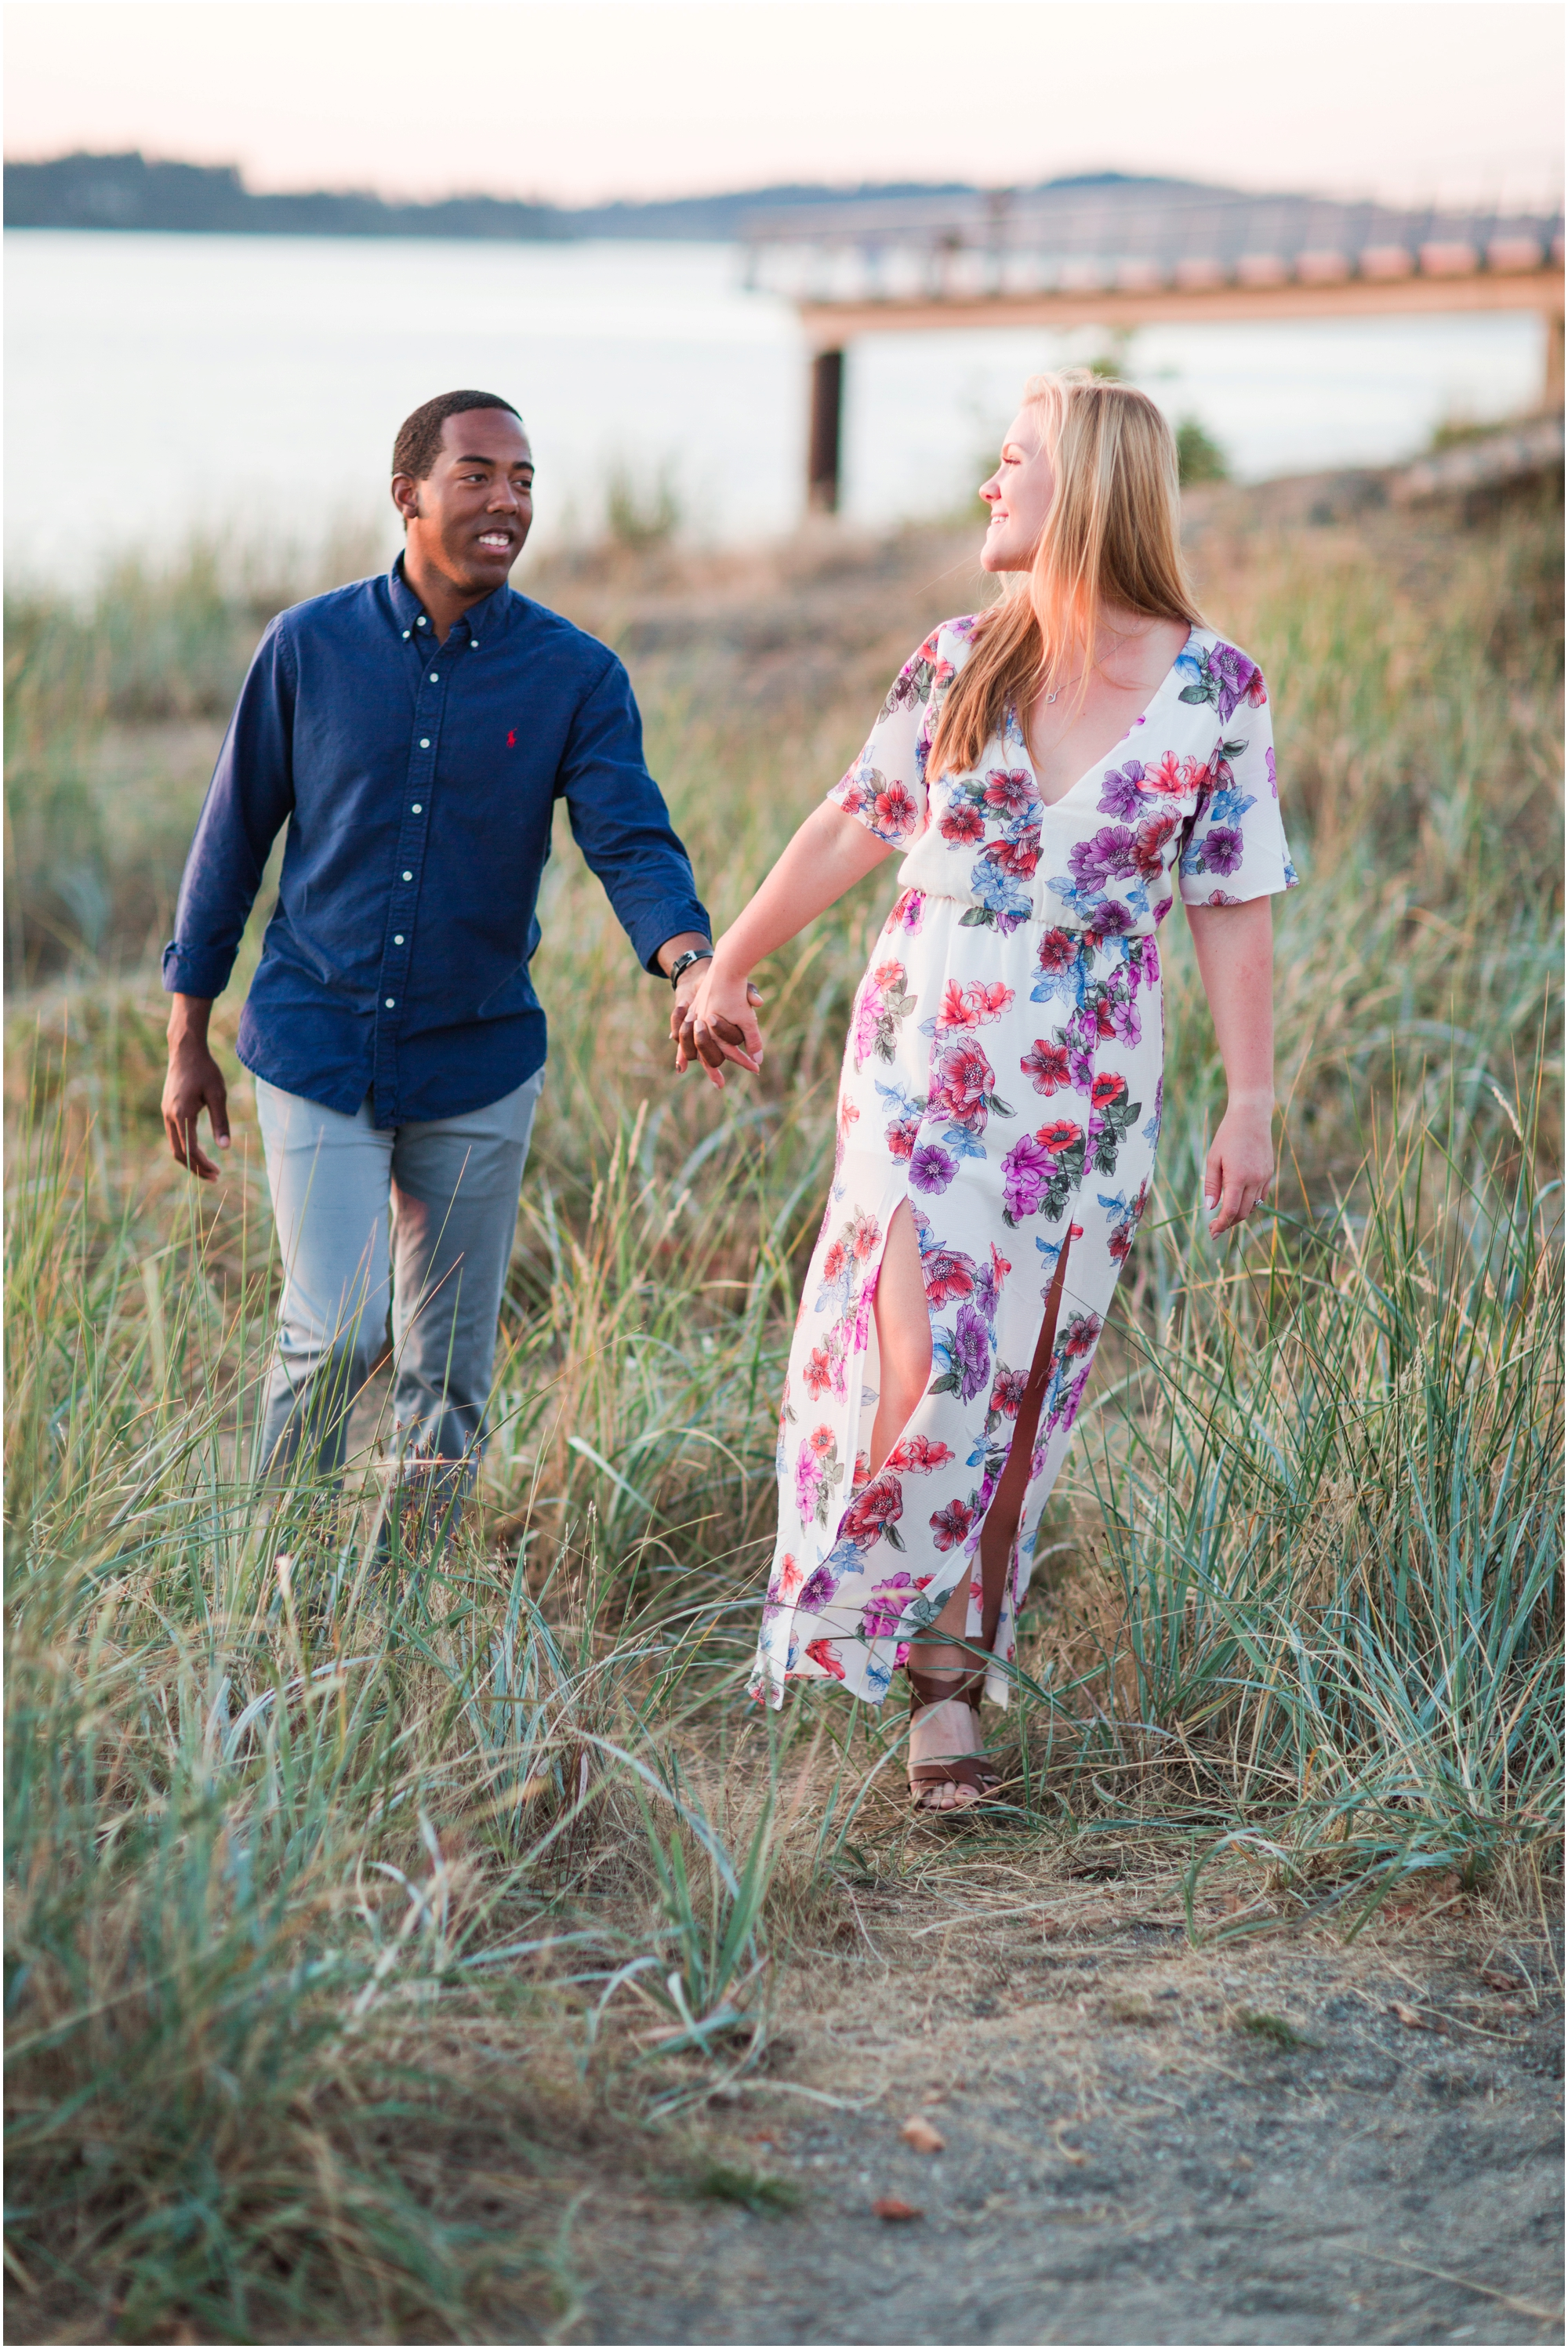 Chambers Bay engagement shoot in Tacoma, WA. Photos by Briana Calderon Photography based in the greater Seattle Area._1275.jpg